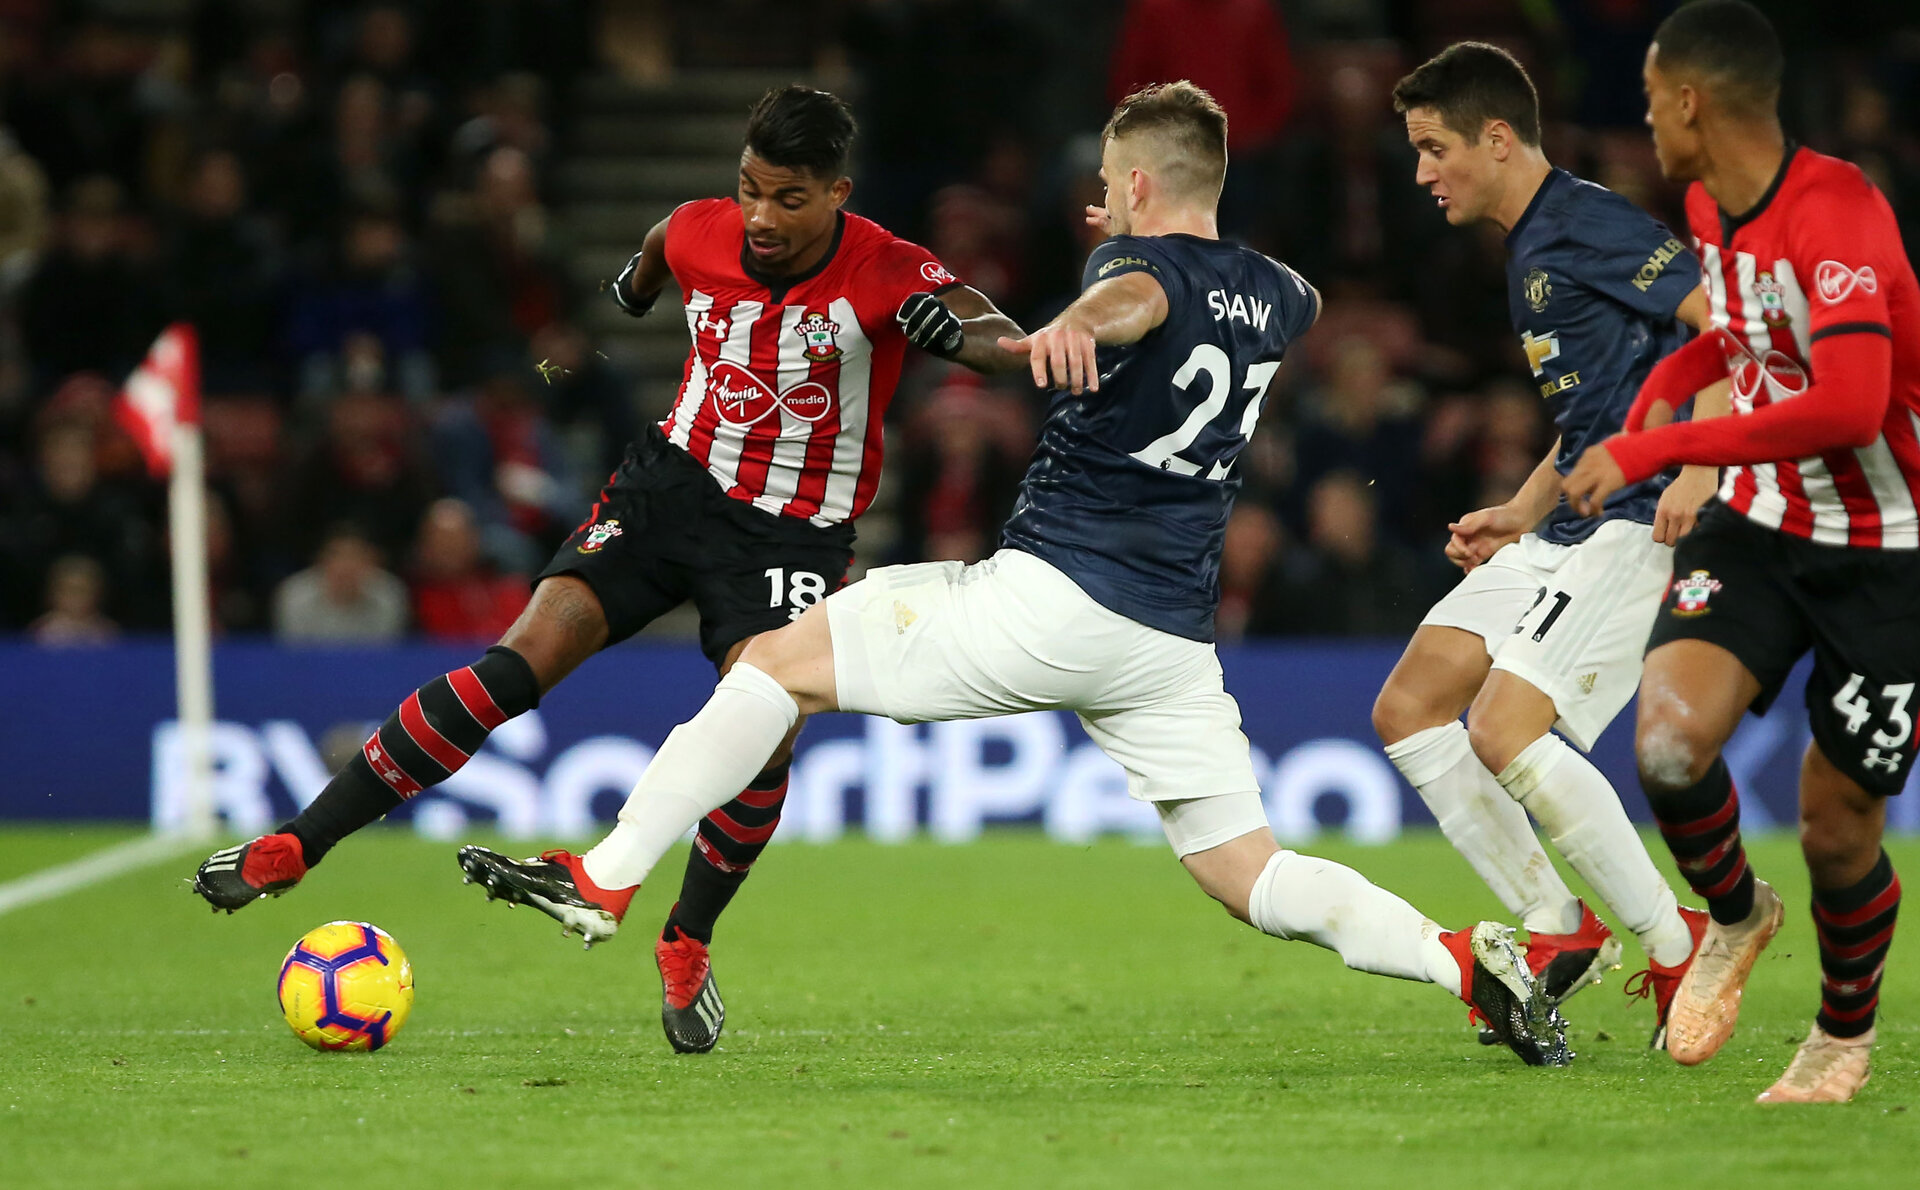 SOUTHAMPTON, ENGLAND - DECEMBER 01: Mario Lemina of Southampton during the Premier League match between Southampton FC and Manchester United at St Mary's Stadium on December 1, 2018 in Southampton, United Kingdom. (Photo by Chris Moorhouse/Southampton FC via Getty Images)